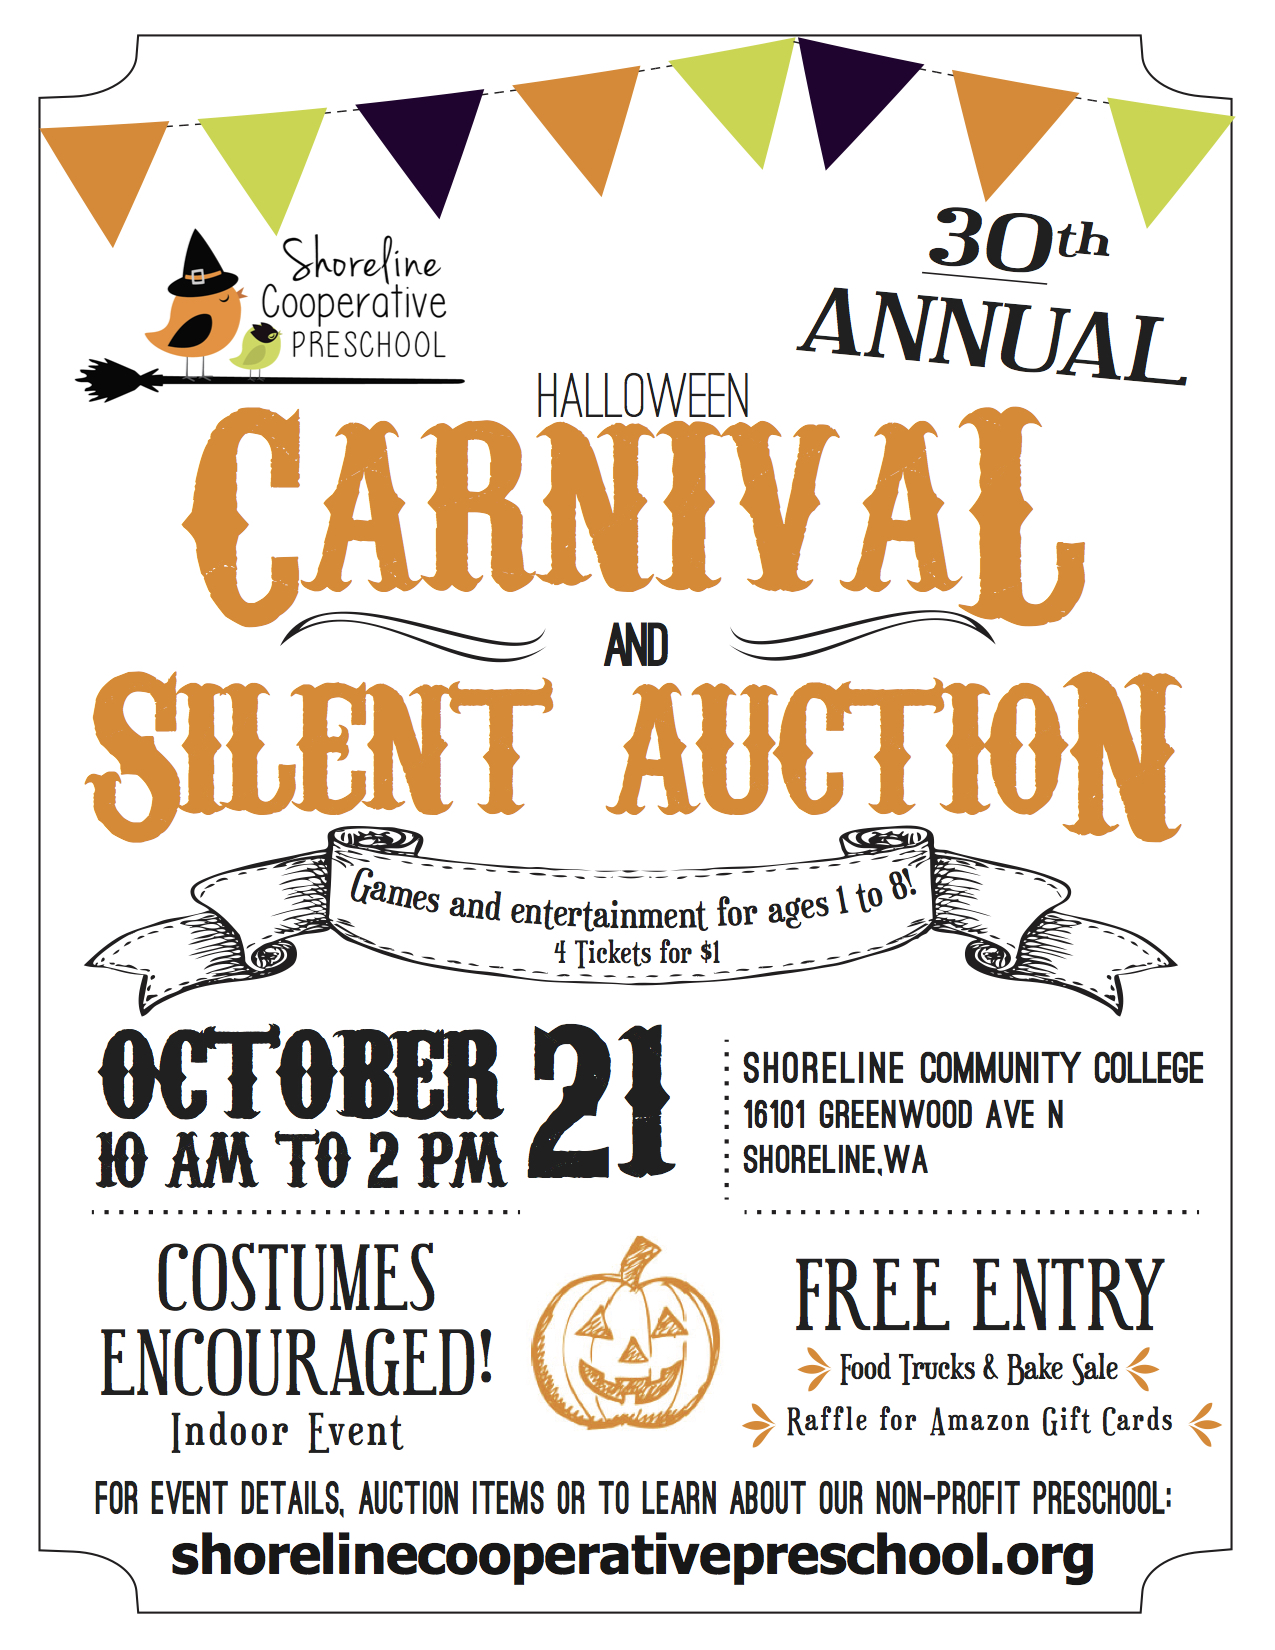 Halloween Carnivals Near Lynnwood 2020 Halloween Carnival and Silent Auction   Lynnwood Today